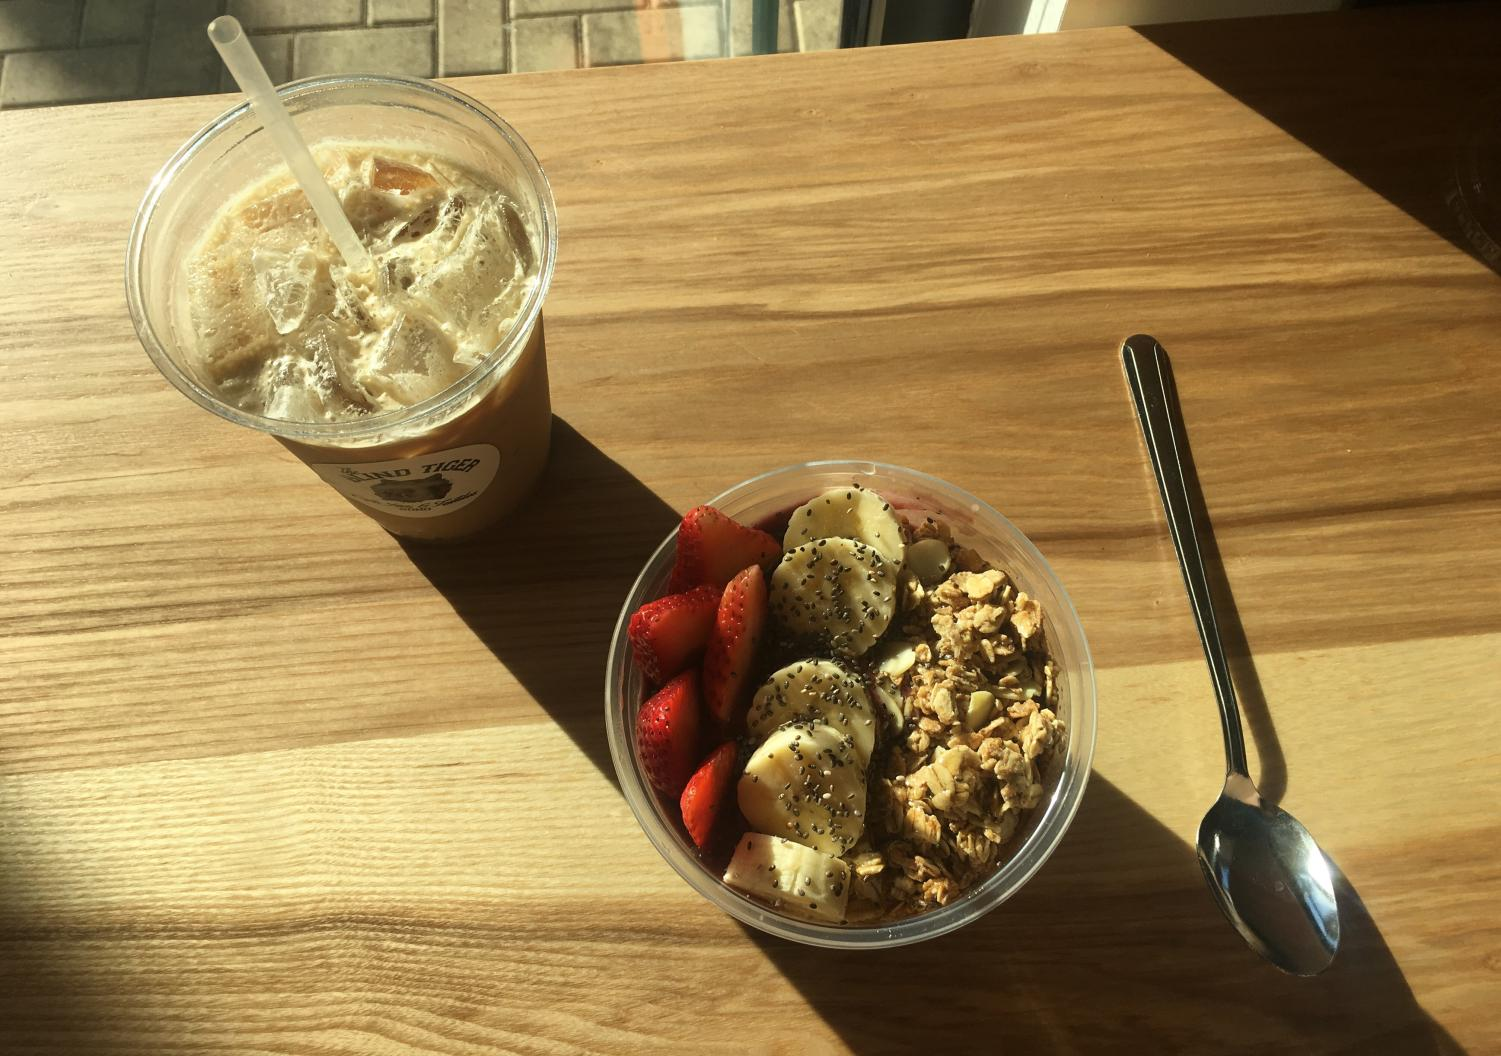 Staffer Nathalie Monroy reviewed the Blind Tiger on South Howard and ordered the Café Caramel iced latte and Original Acai Bowl.